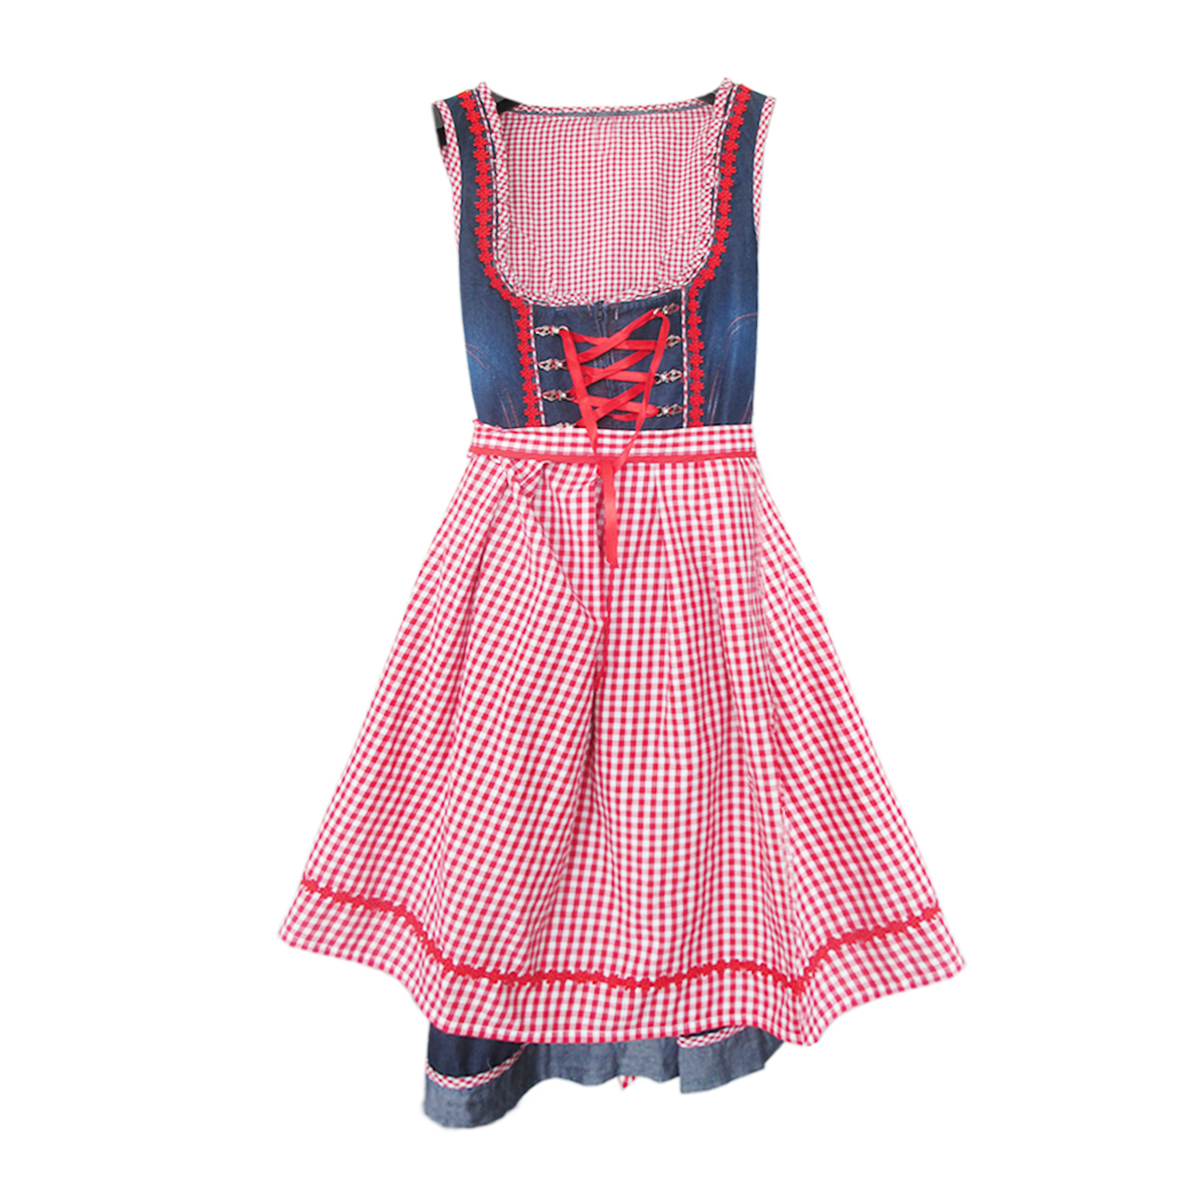 CHECKERED APPAREL WITH COTTON JEANS DIRNDL